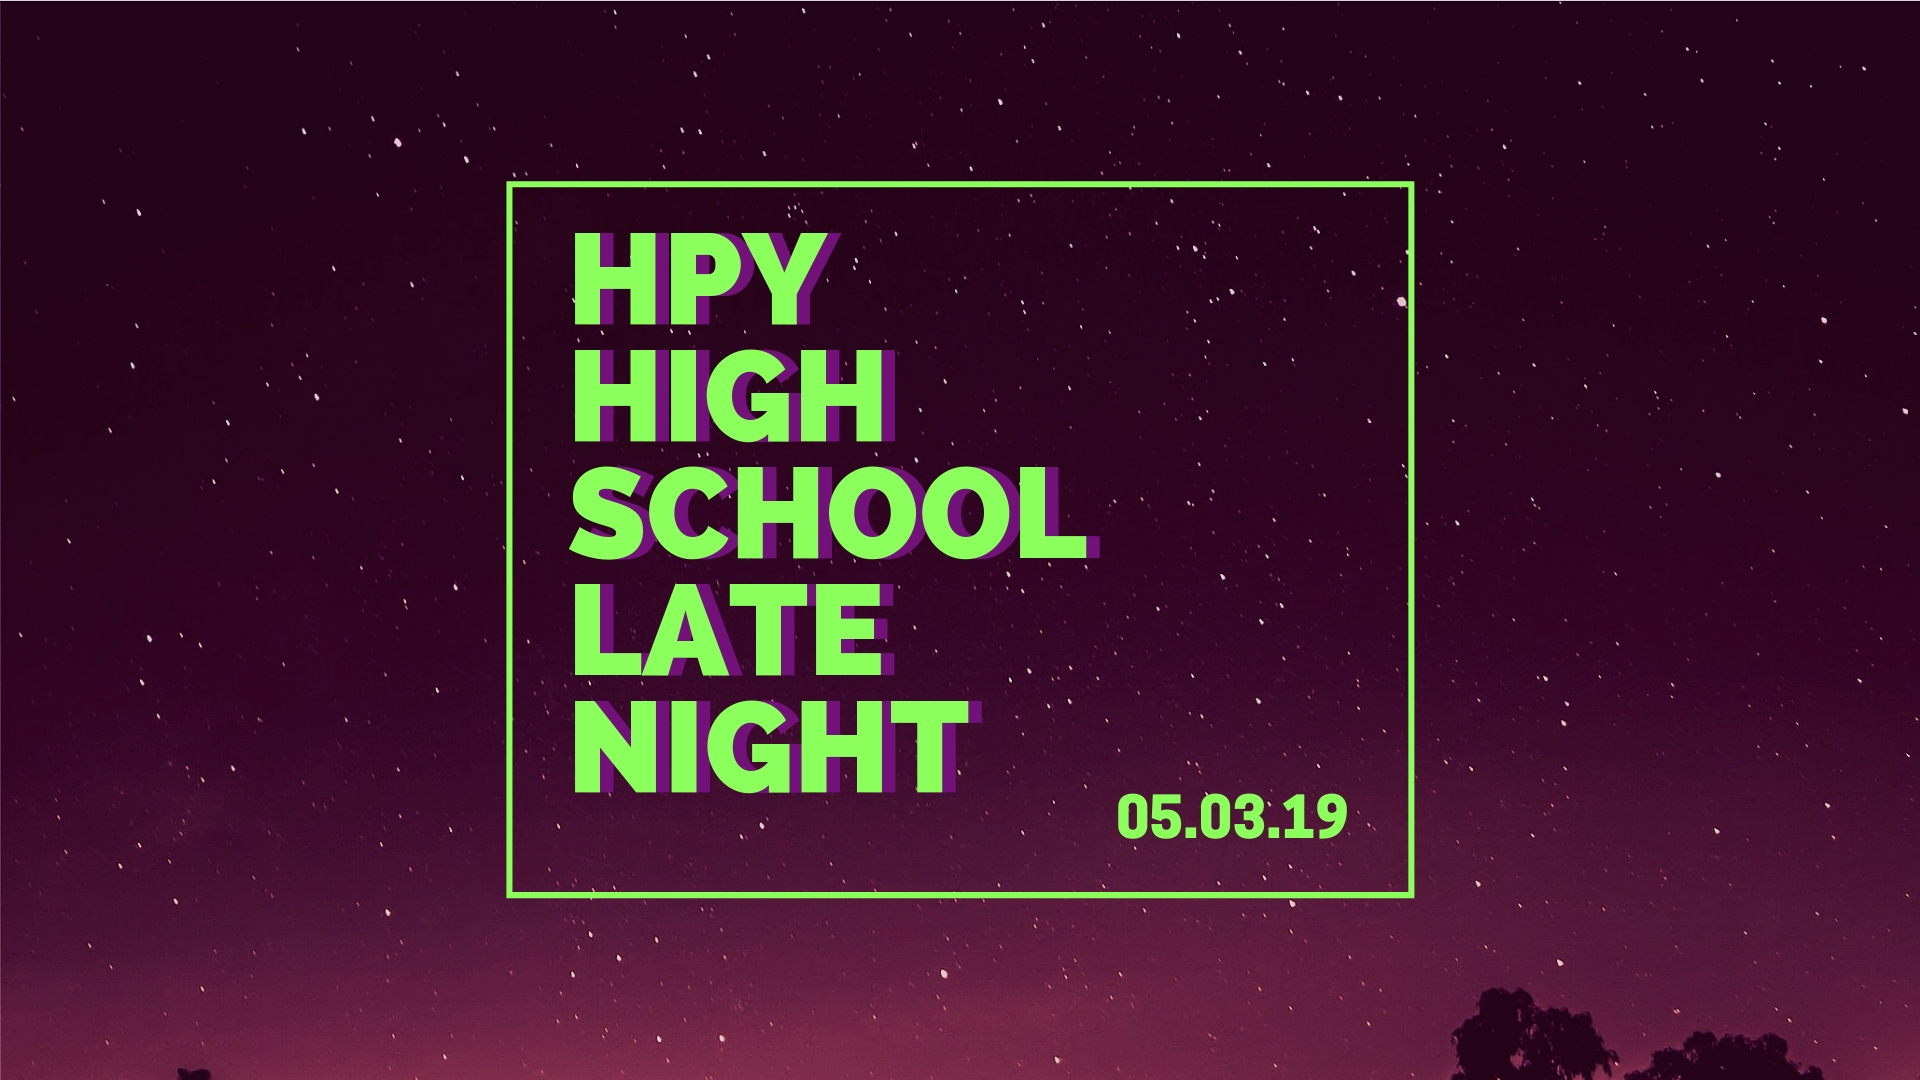 hp high school late night.jpg